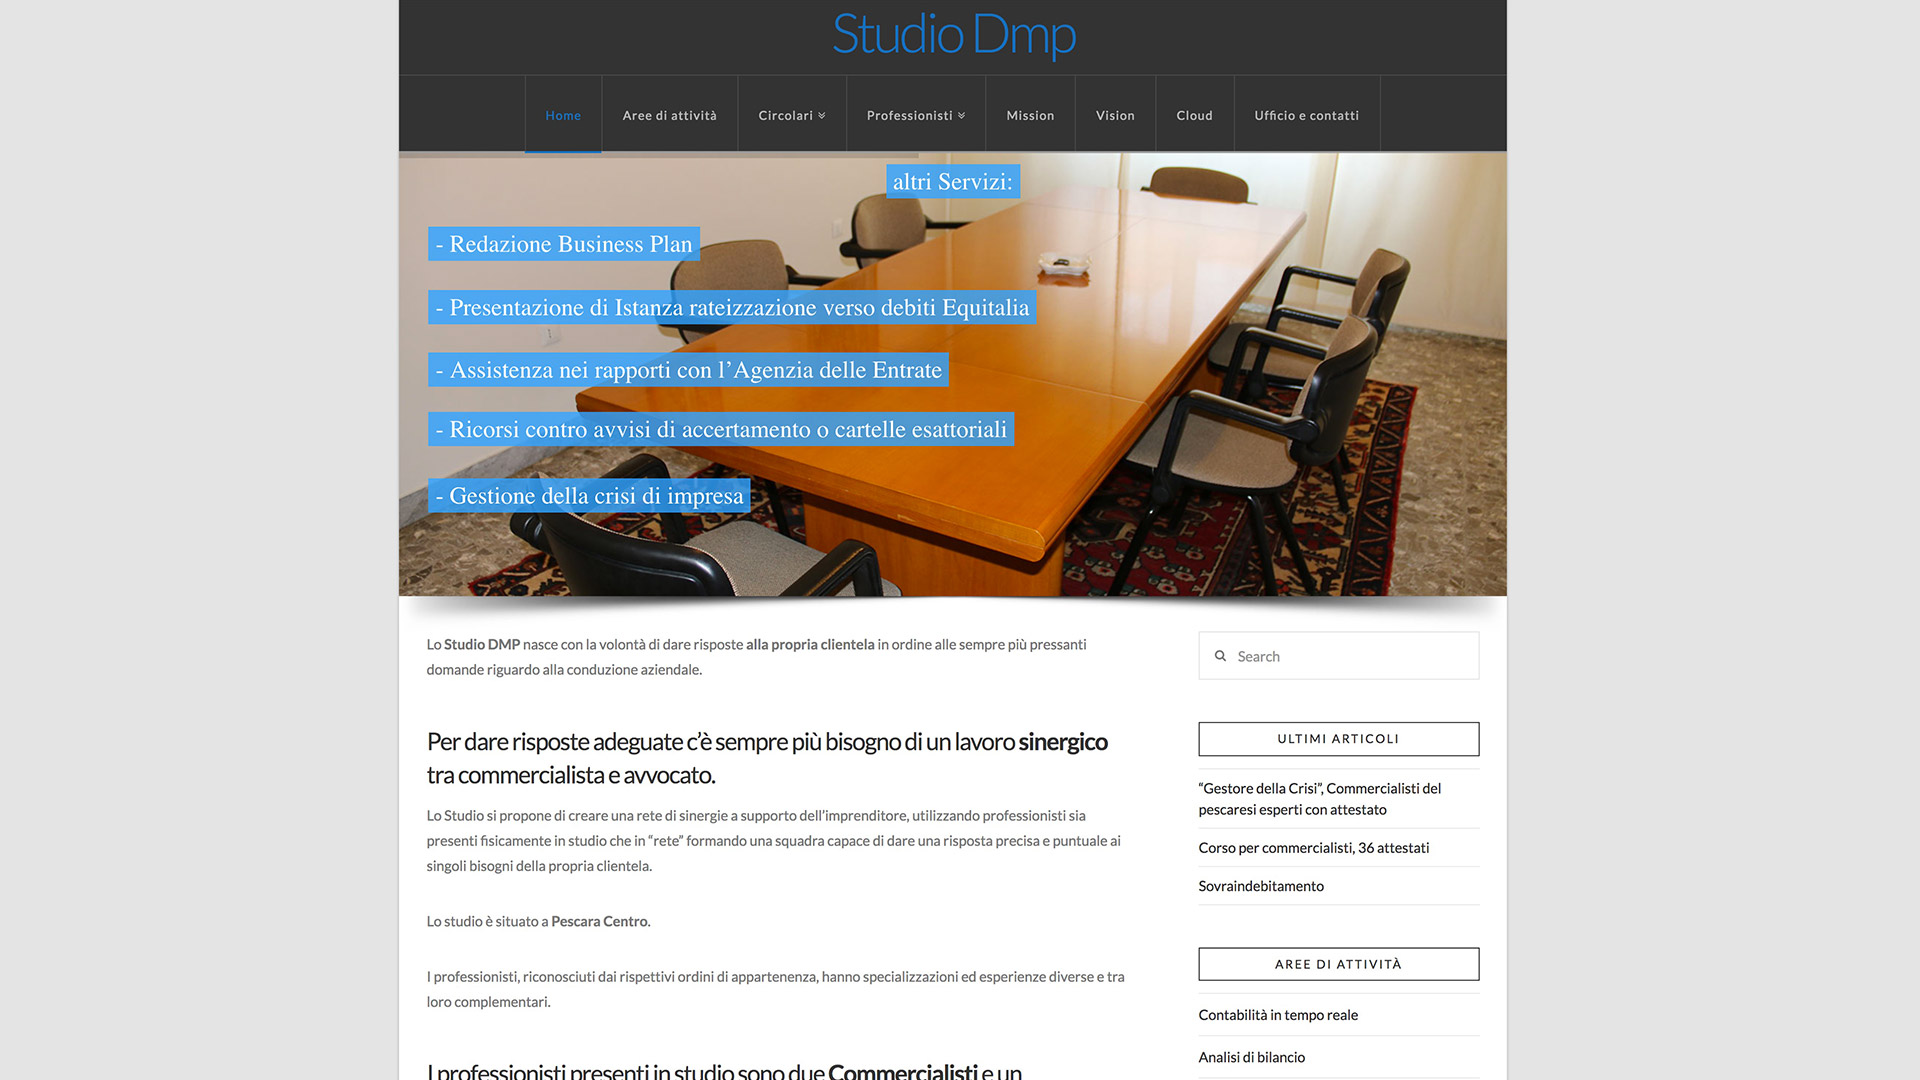 Studio Dmp – Commercialisti